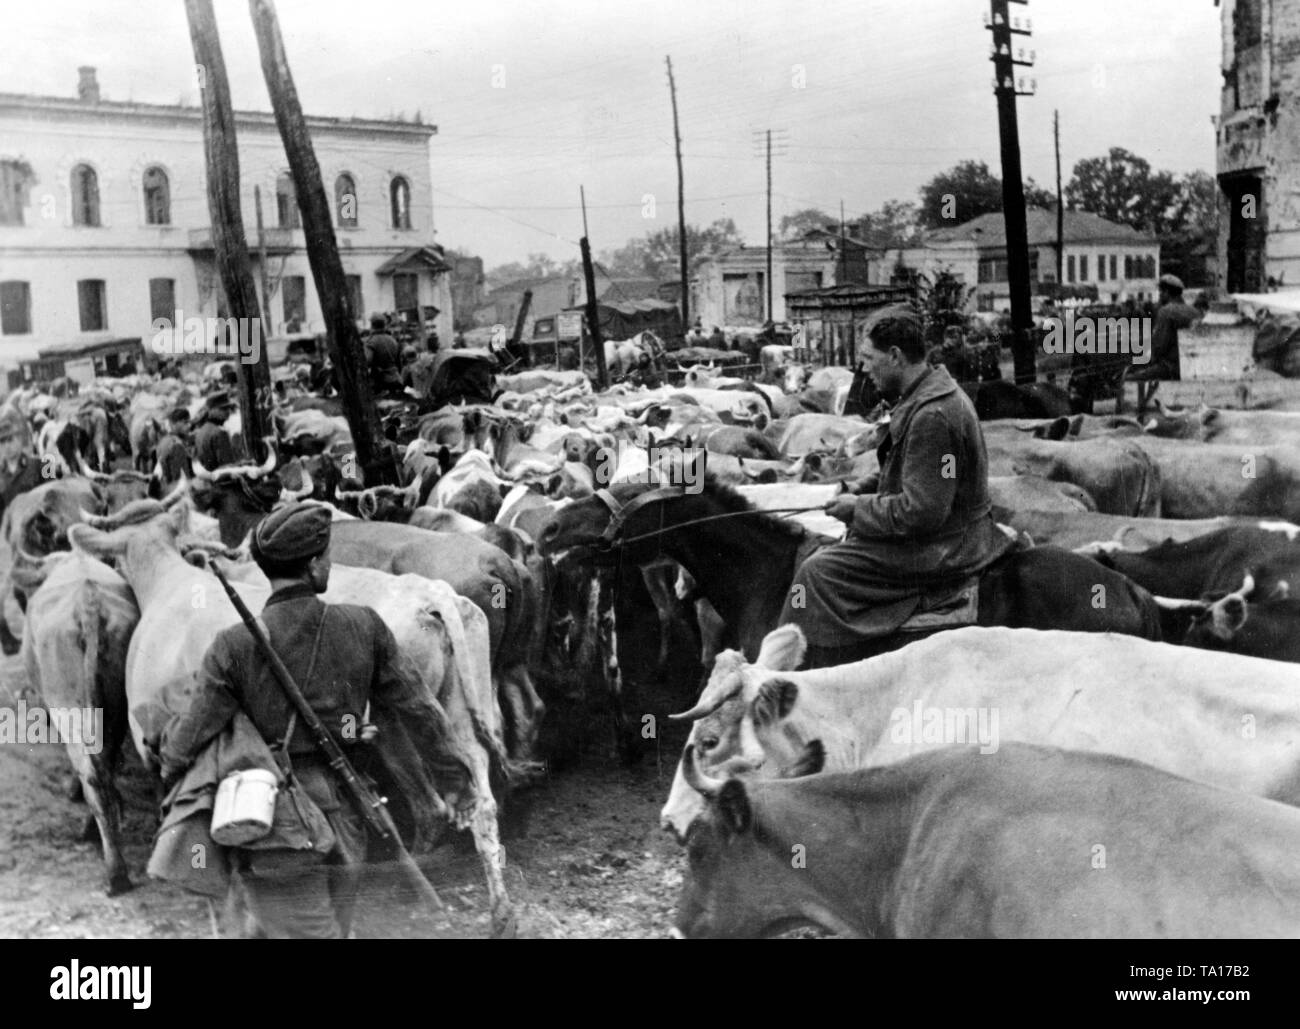 Soldiers of the Wehrmacht drive cattle herds into the hinterland during their retreat on the Eastern front. Stock Photo